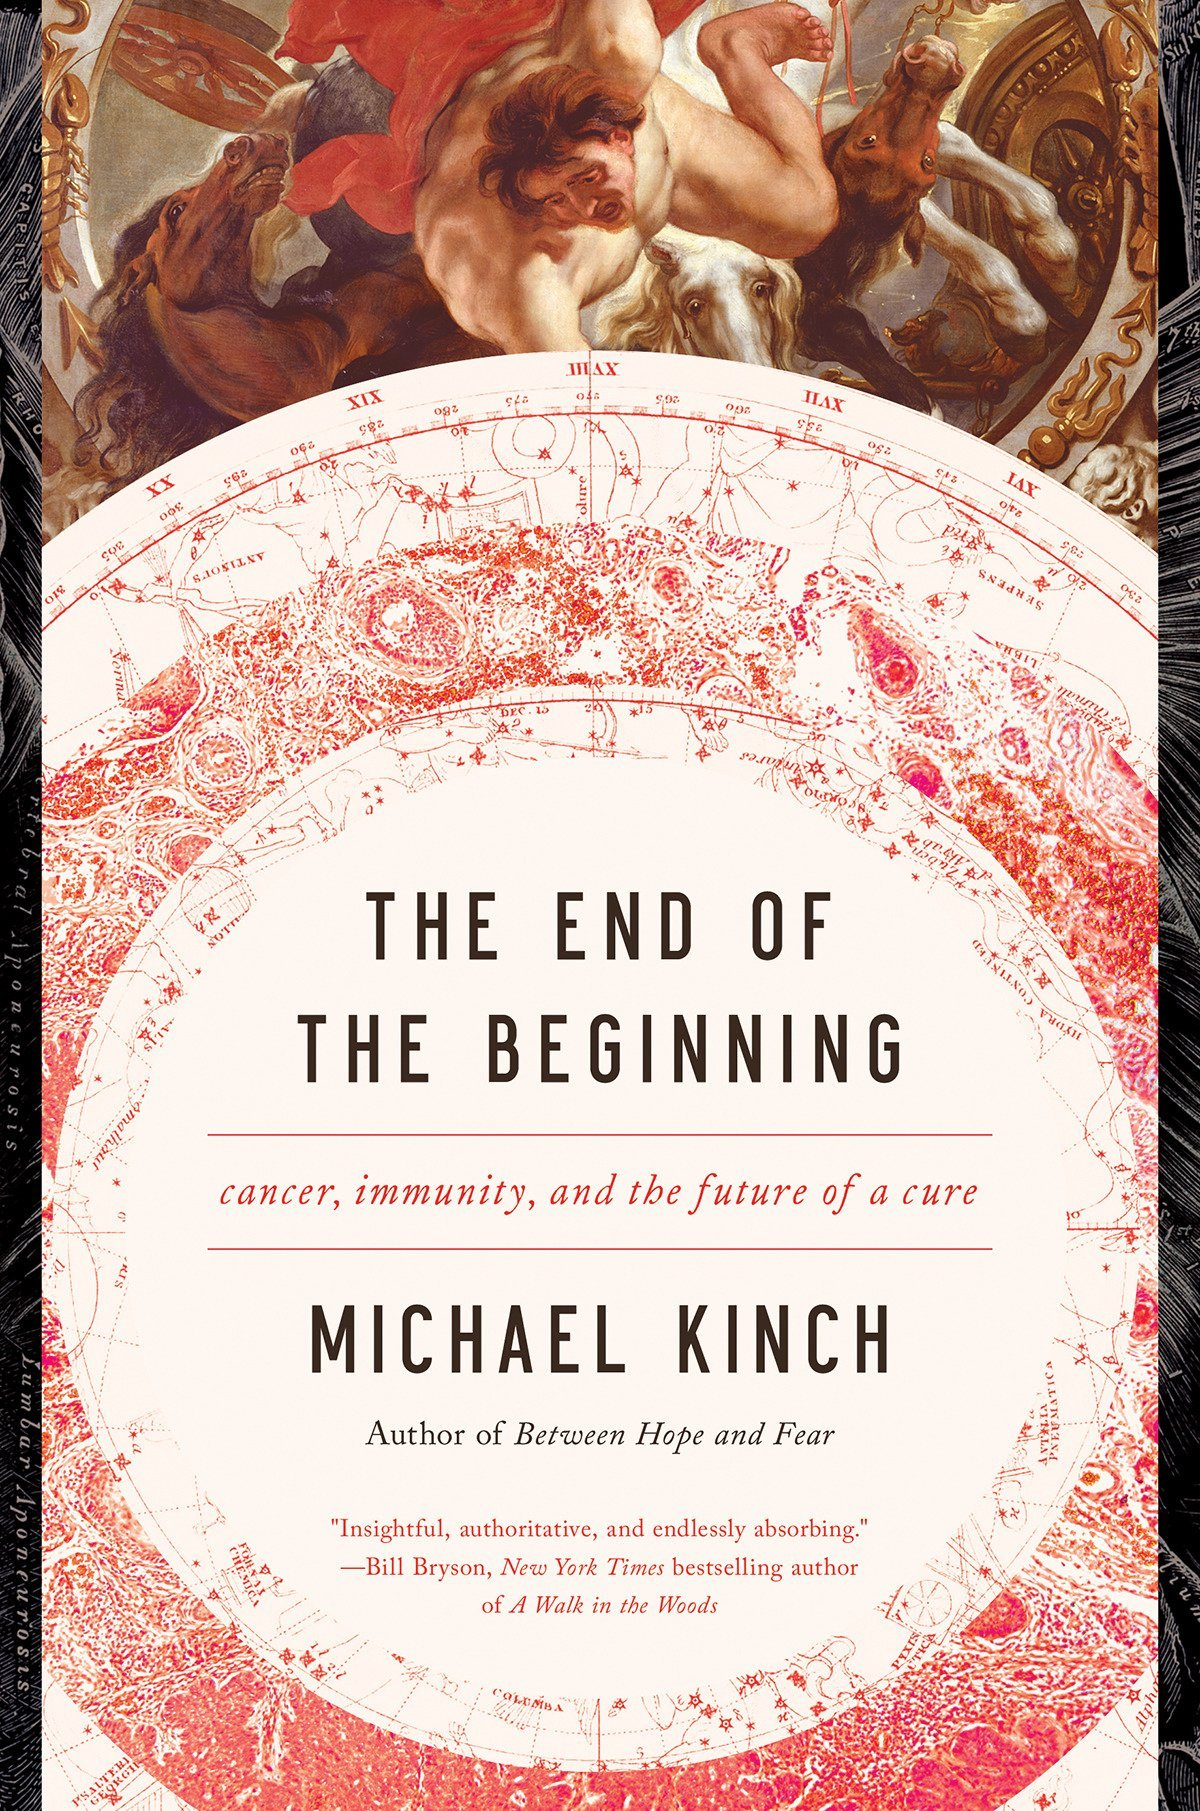 The End of the Beginning  is a remarkable history of cancer  treatment and the evolution of our understanding of its dynamic  interplay with the immune system. Through Michael Kinch's personal  experience as a cancer researcher at Washington University and the head  of the oncology program at a leading biotechnology company, we witness  the incredible accumulation of breakthrough science and its rapid  translation into life-saving technologies that have begun to  dramatically increase the quality and quantity of life for cancer  patients.